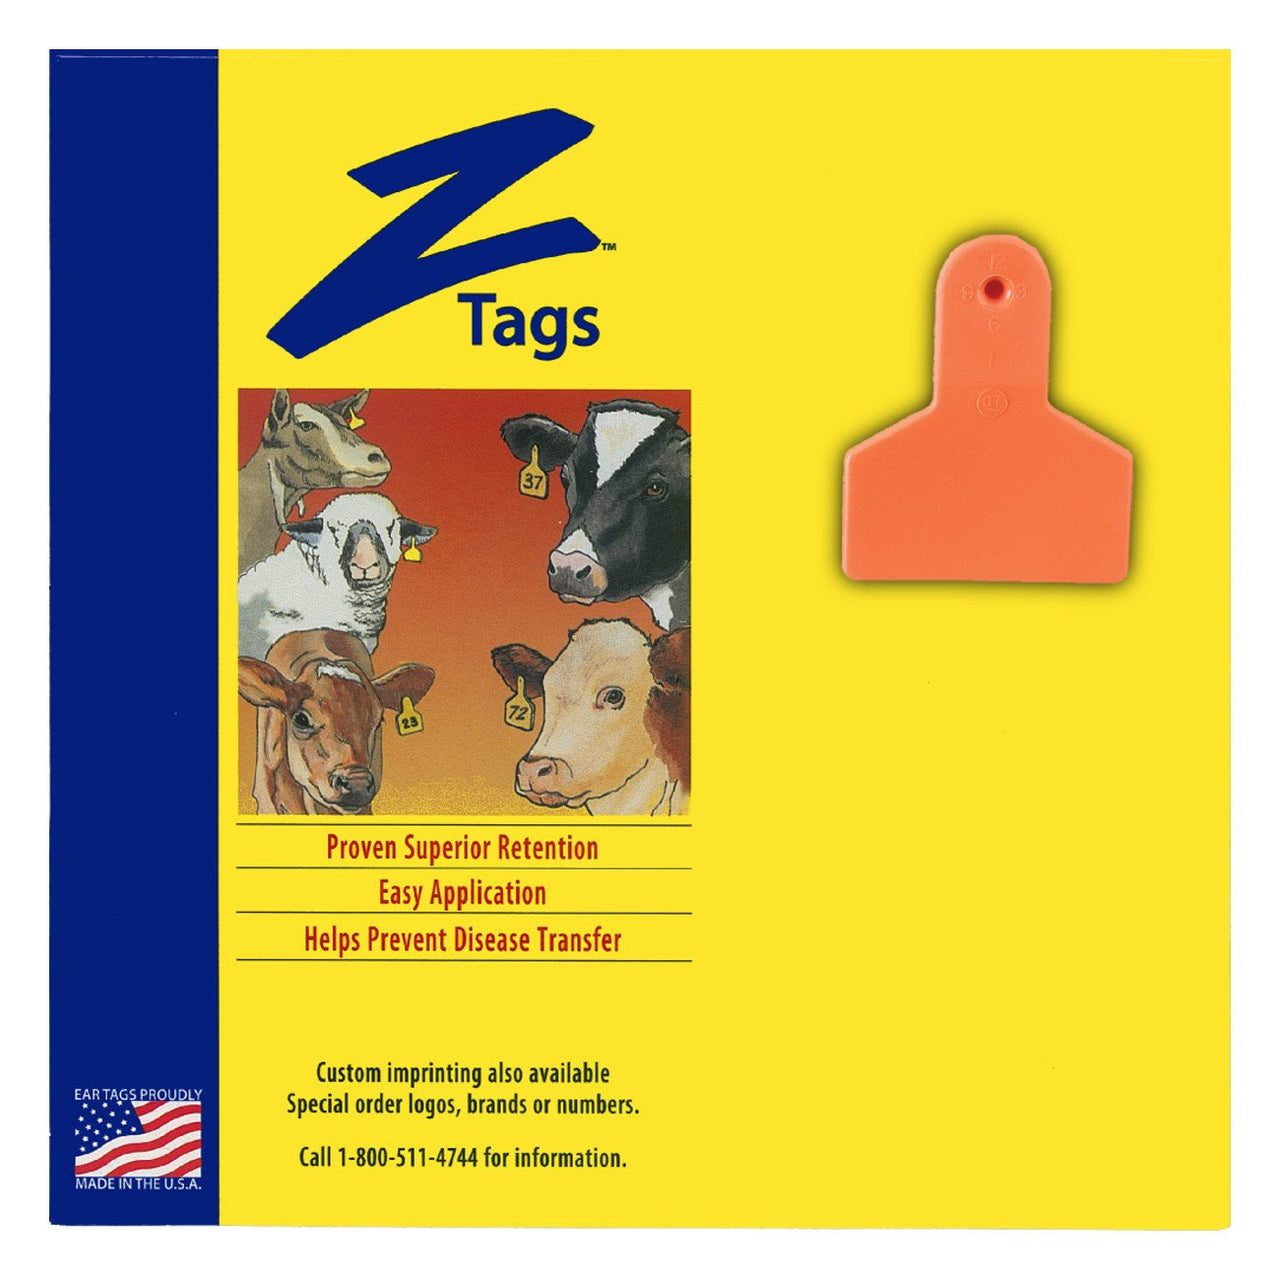 Z Tags 1 piece small animal blank (Orange) 25 pack